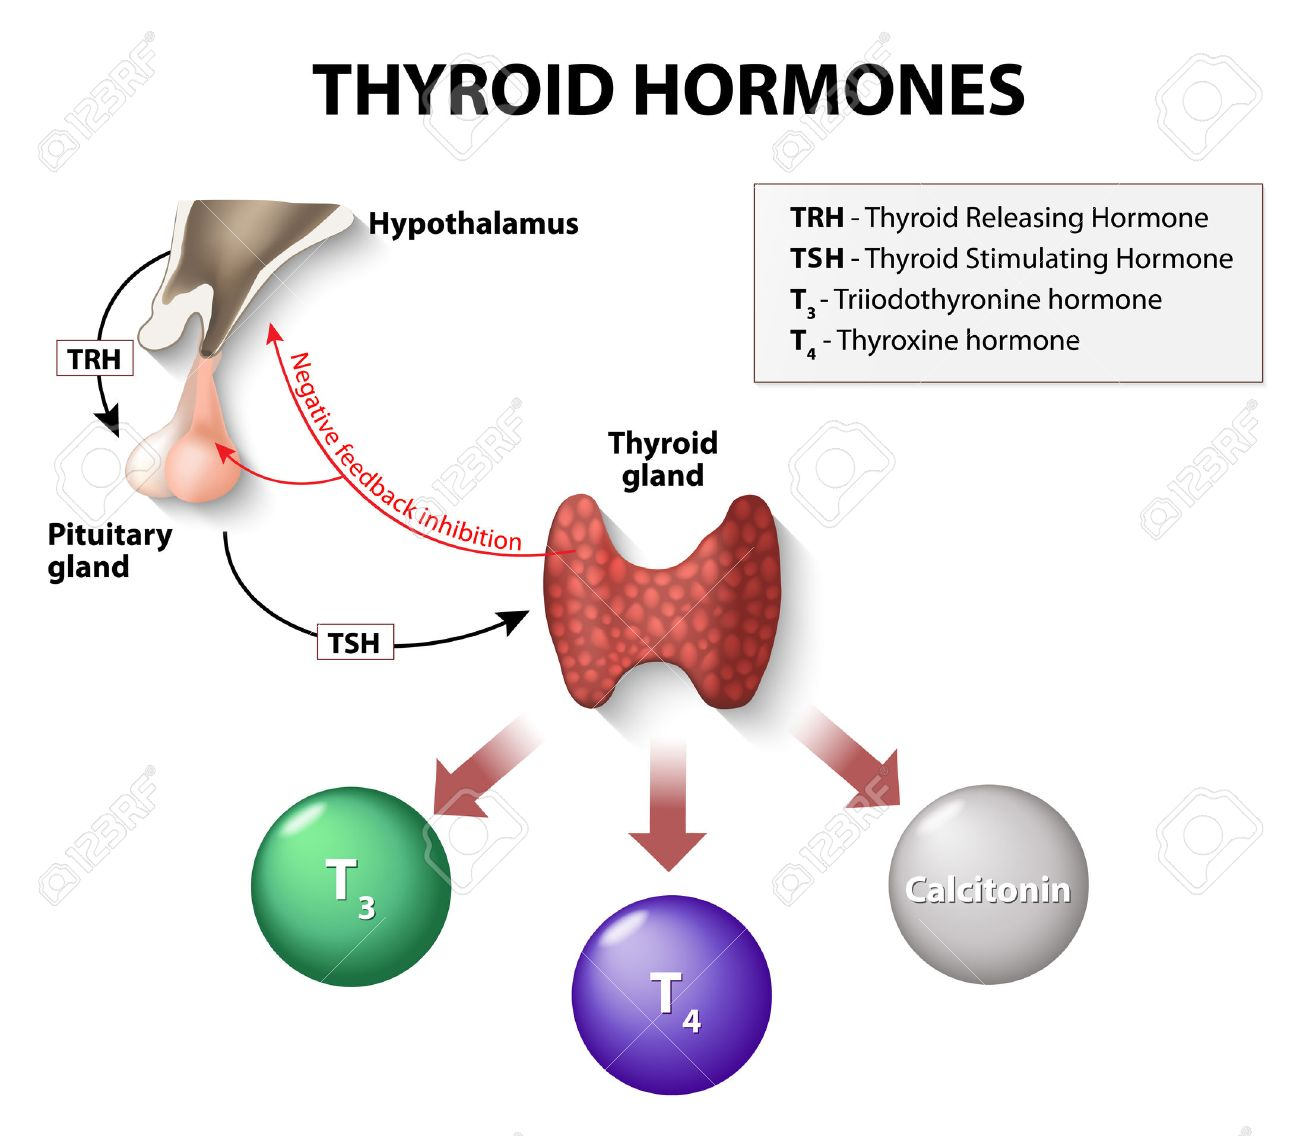 Thyroid hormones human endocrine system royalty free cliparts thyroid hormones human endocrine system stock vector 44721853 ccuart Choice Image